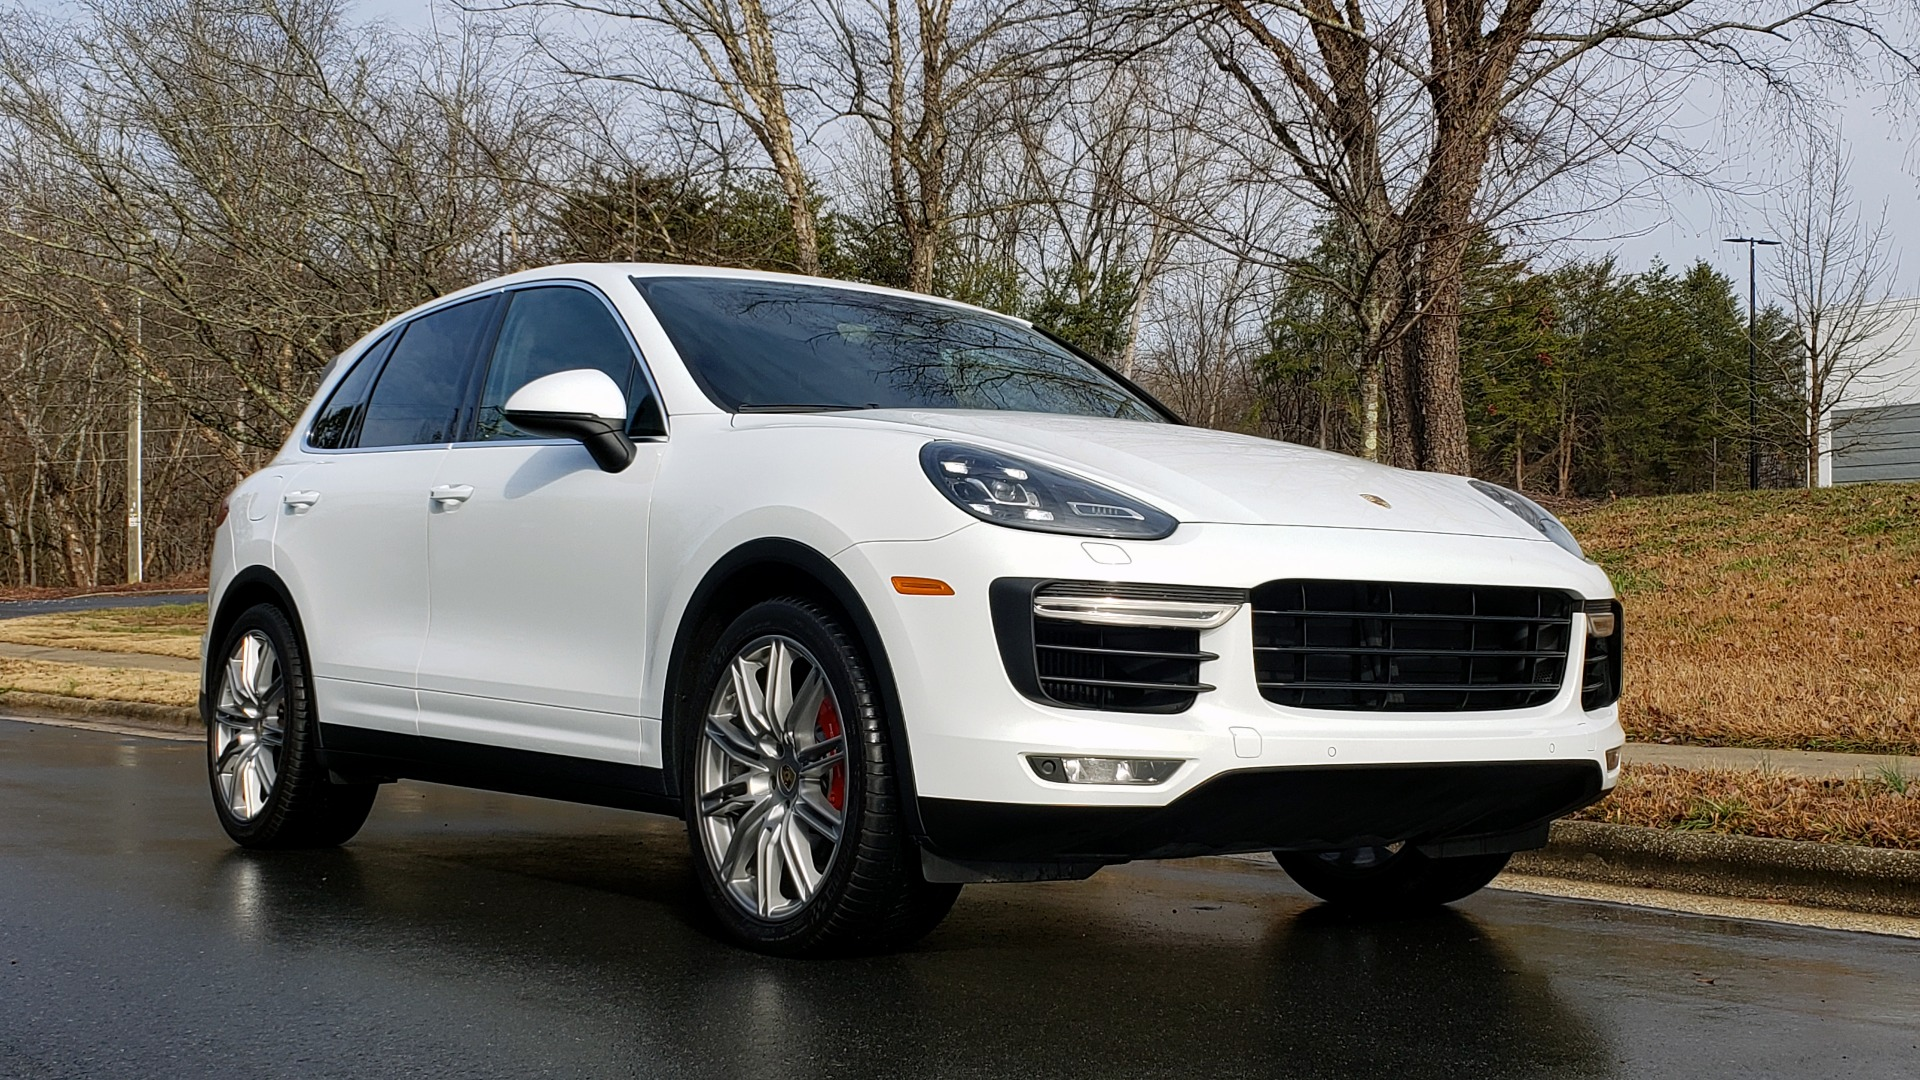 Used 2015 Porsche CAYENNE TURBO V8 / PREMIUM / NAV / SUNROOF / PARK ASSIST / LCA / REARVIEW for sale $47,995 at Formula Imports in Charlotte NC 28227 6